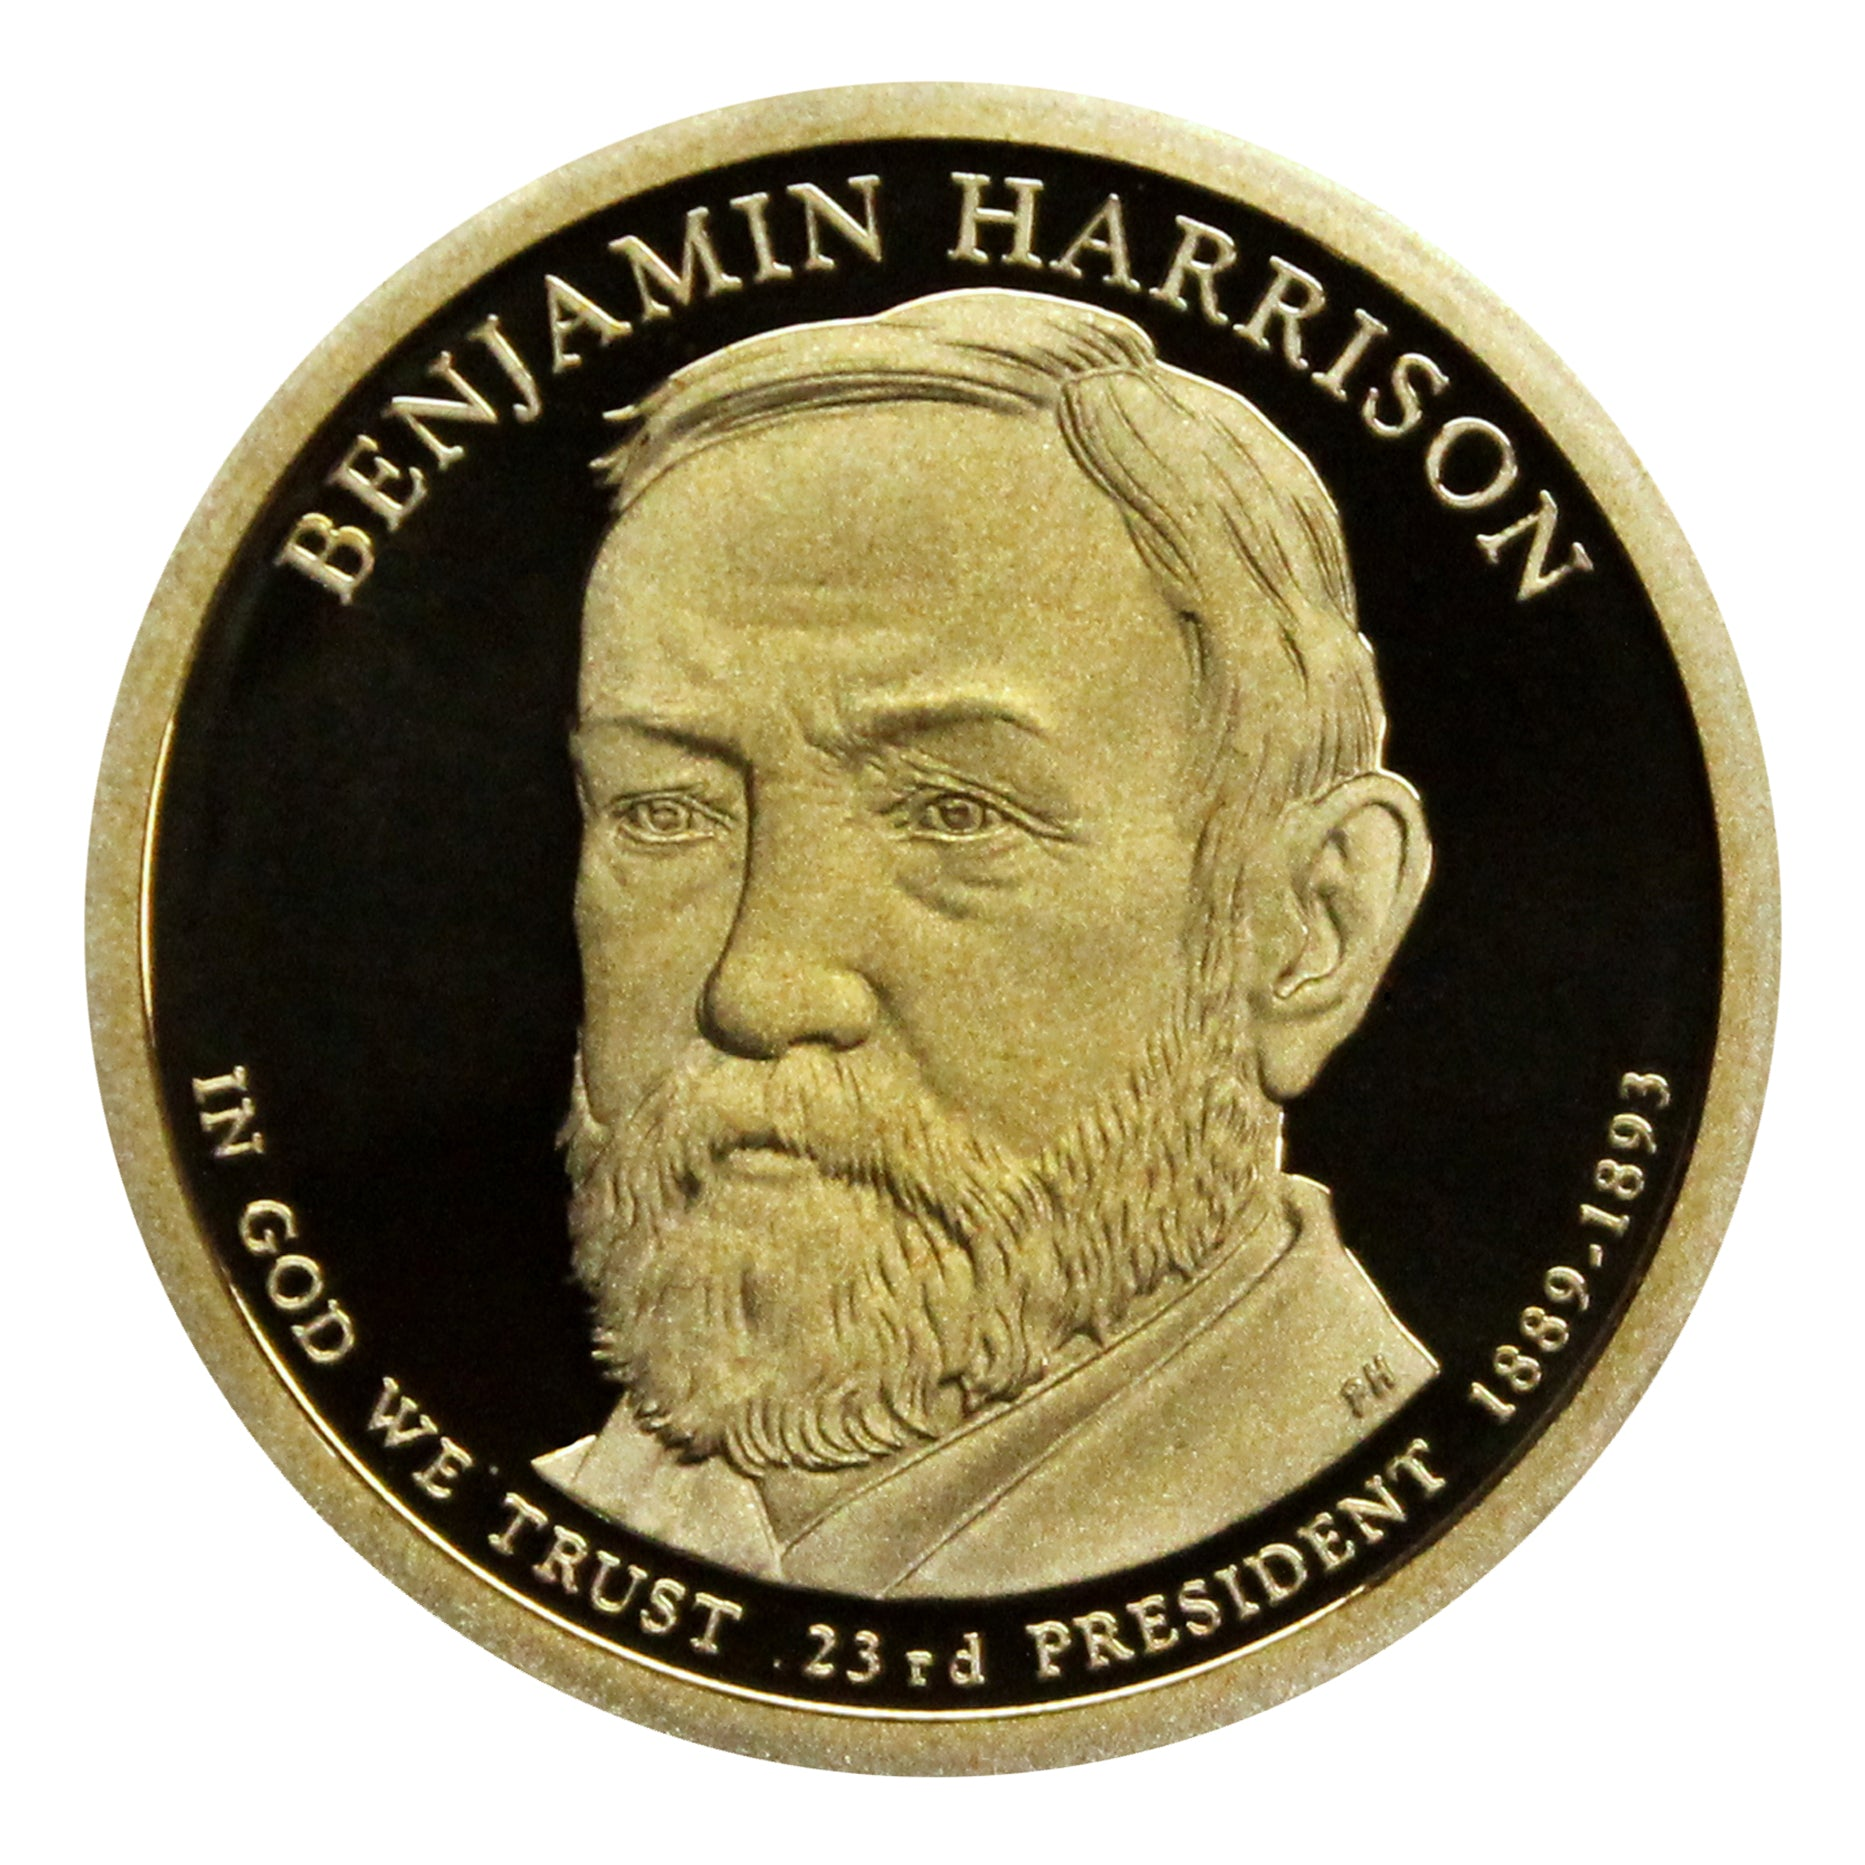 2012-S Benjamin Harrison Presidential Proof Dollar Gem Deep Cameo US Coin